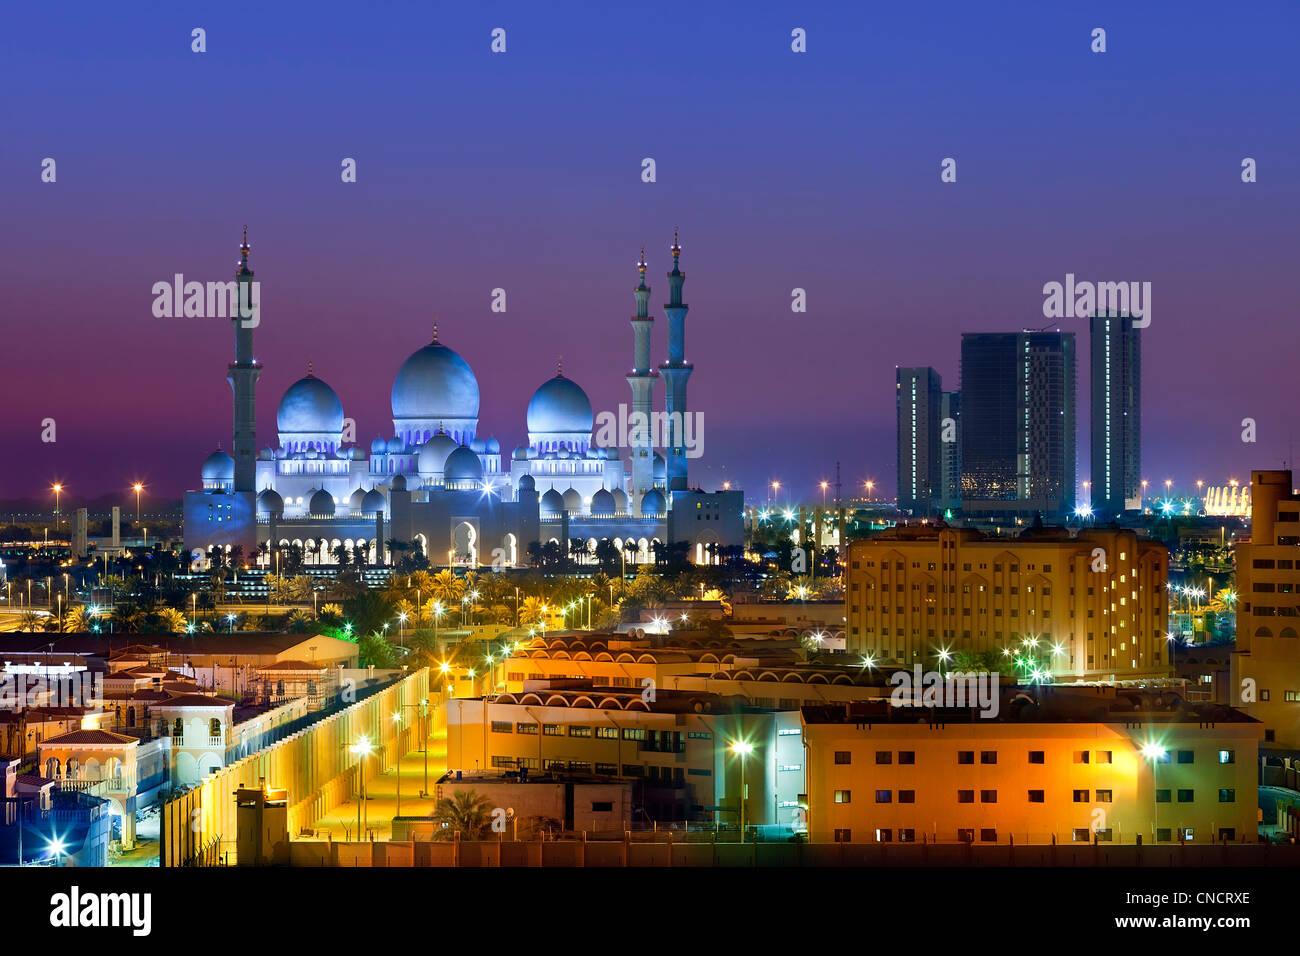 Abu Dhabi, du stade de Sheikh Zayed Mosque Photo Stock